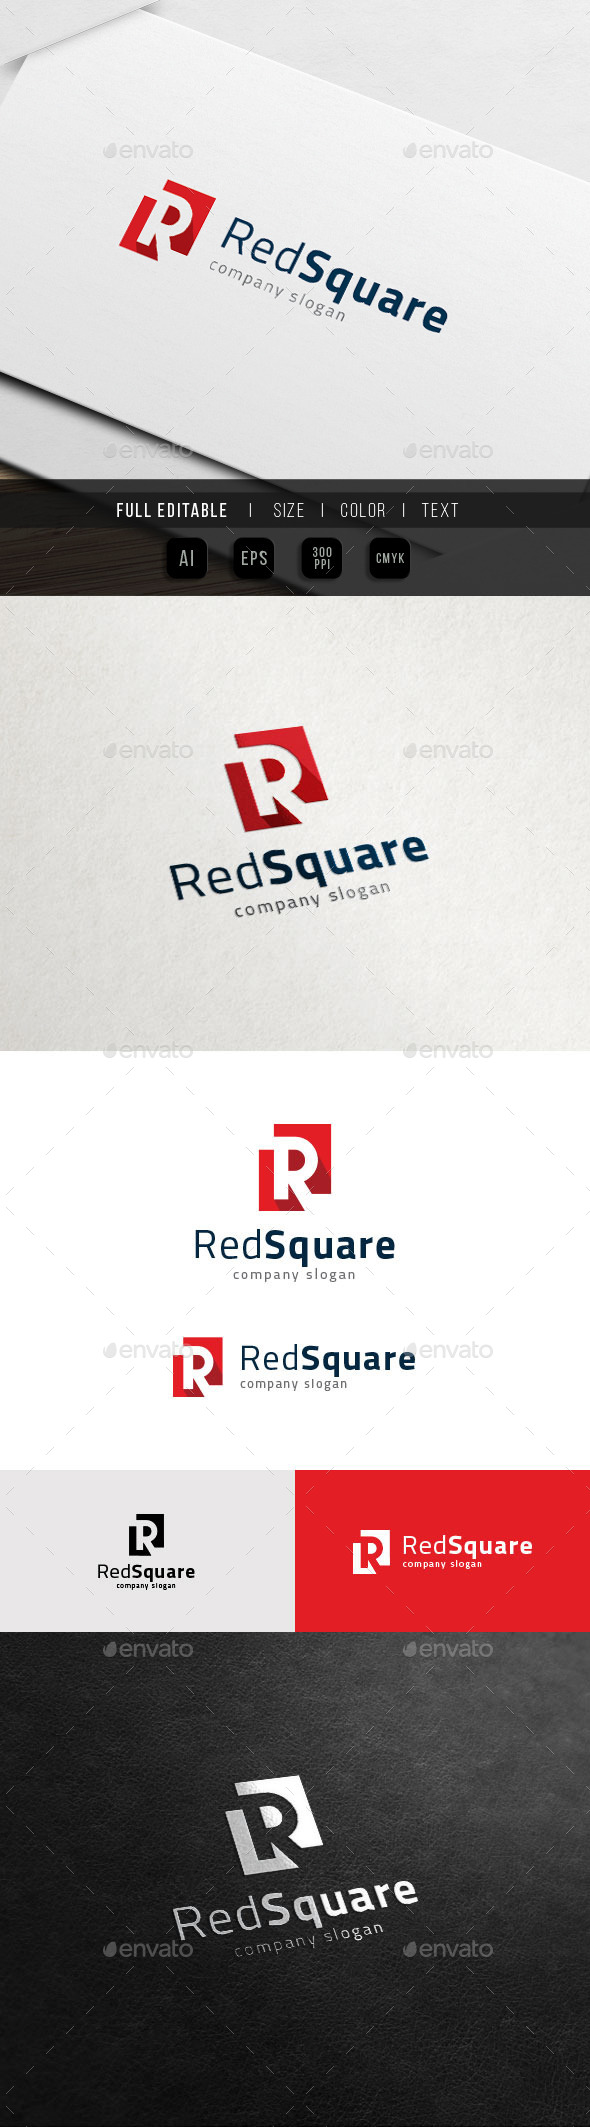 R Logo - Red Square - Real Estate - Letters Logo Templates